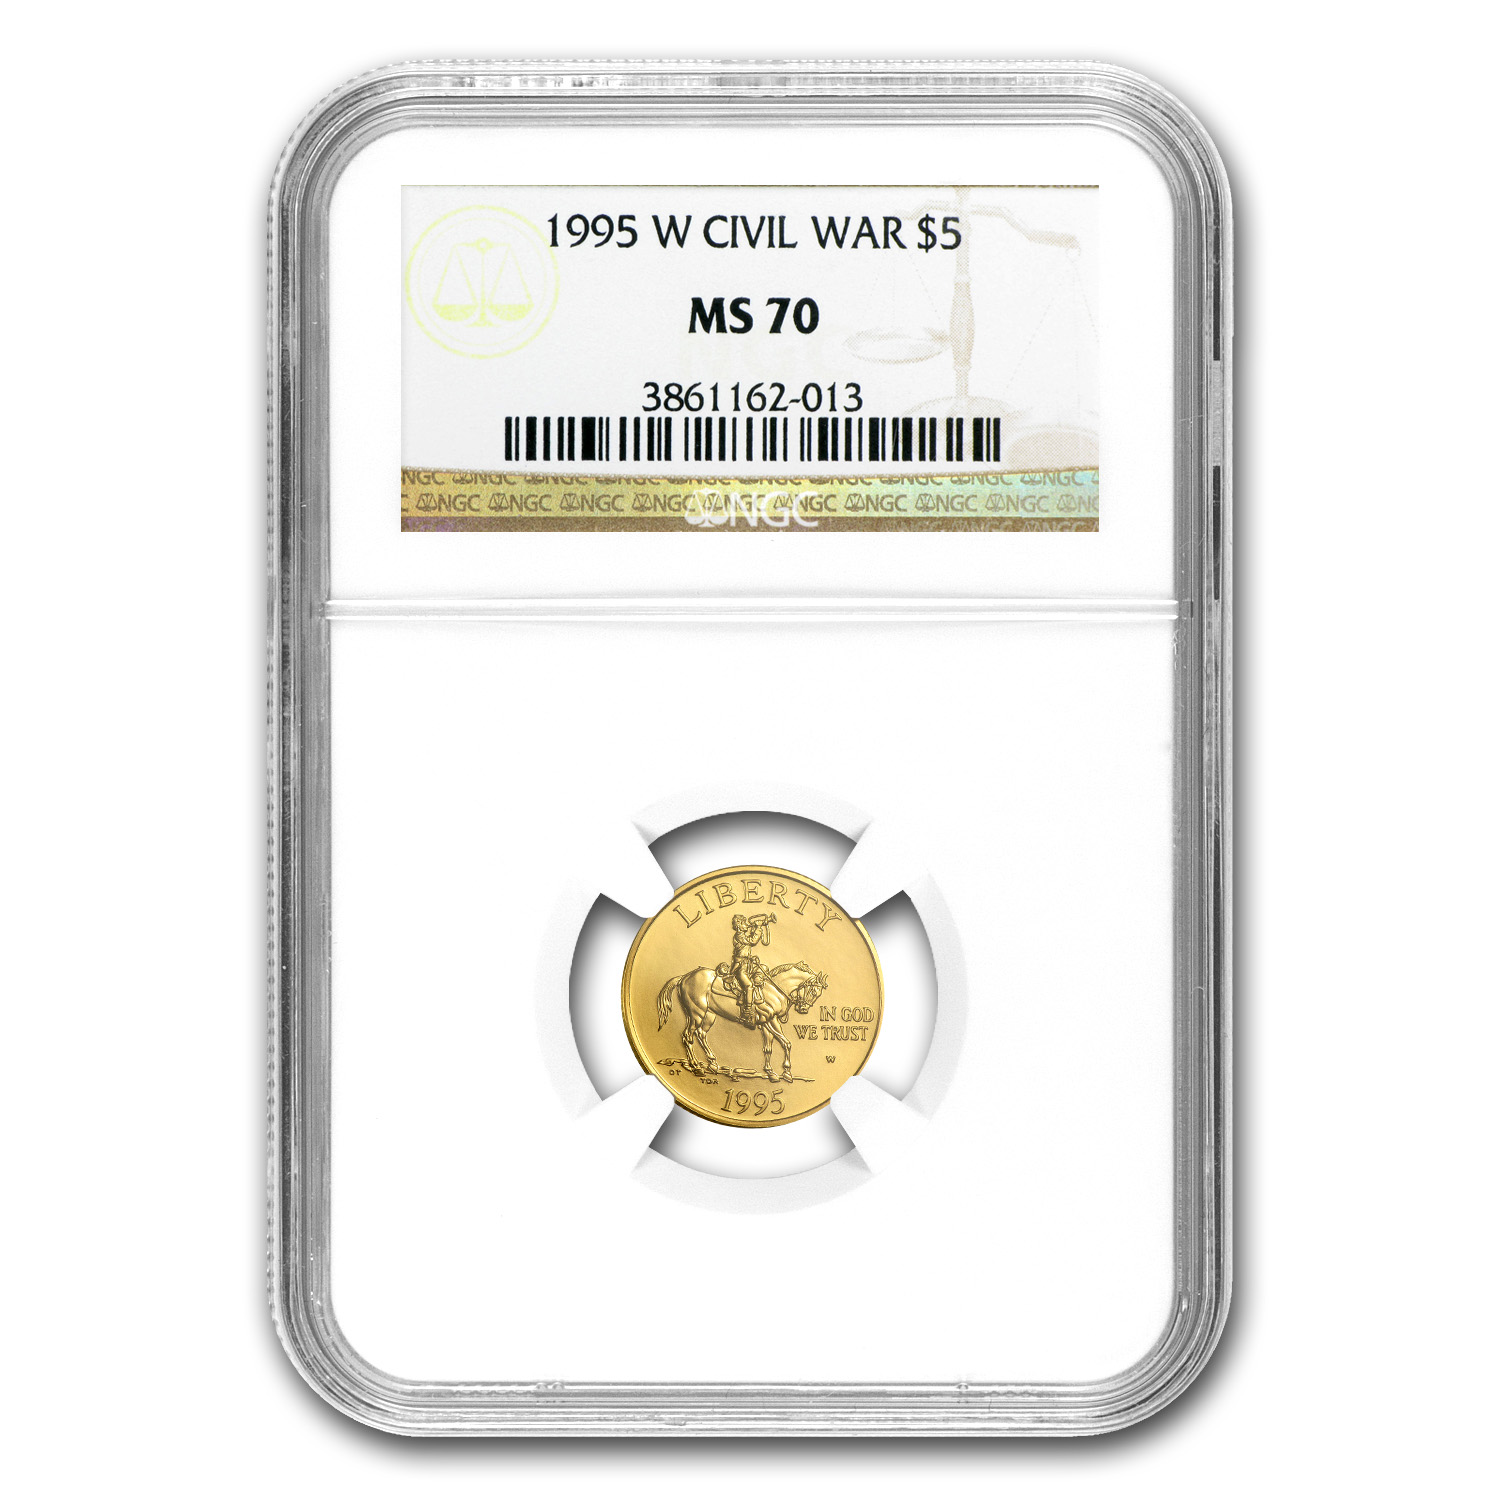 1995-W Gold $5 Commemorative Civil War MS-70 NGC